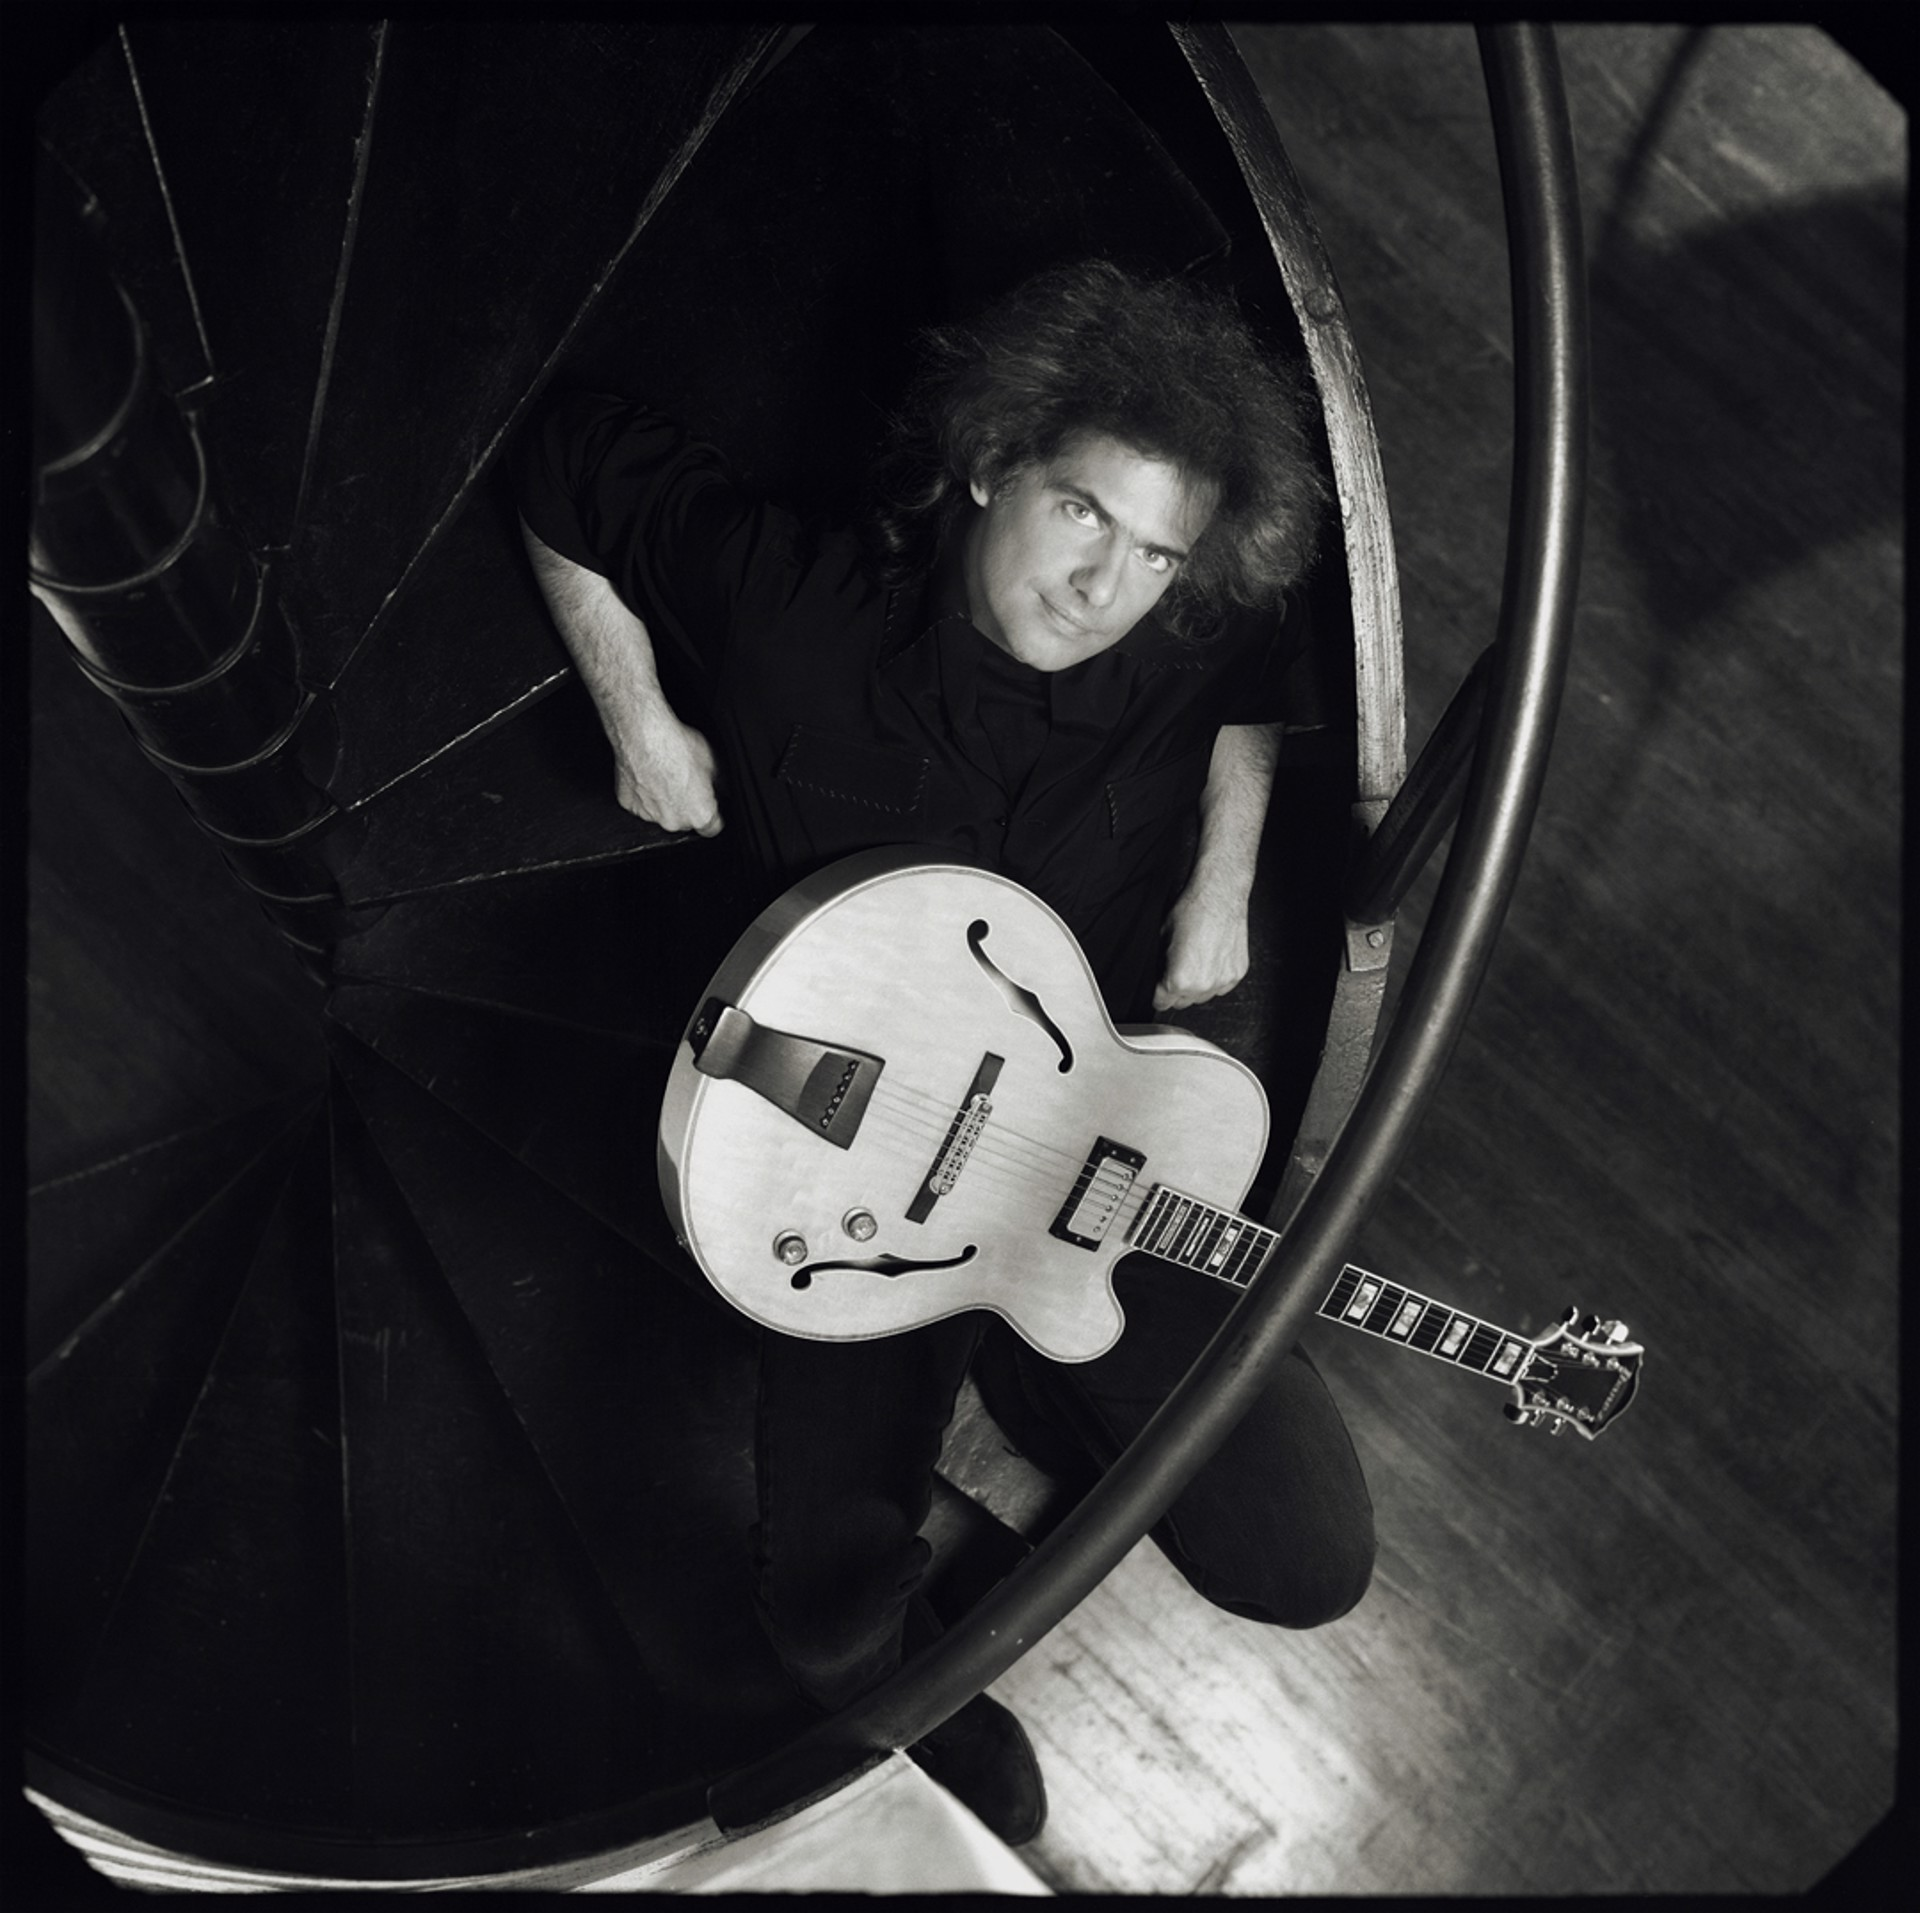 01049 Pat Metheny Seated with Guitar BW by Timothy White